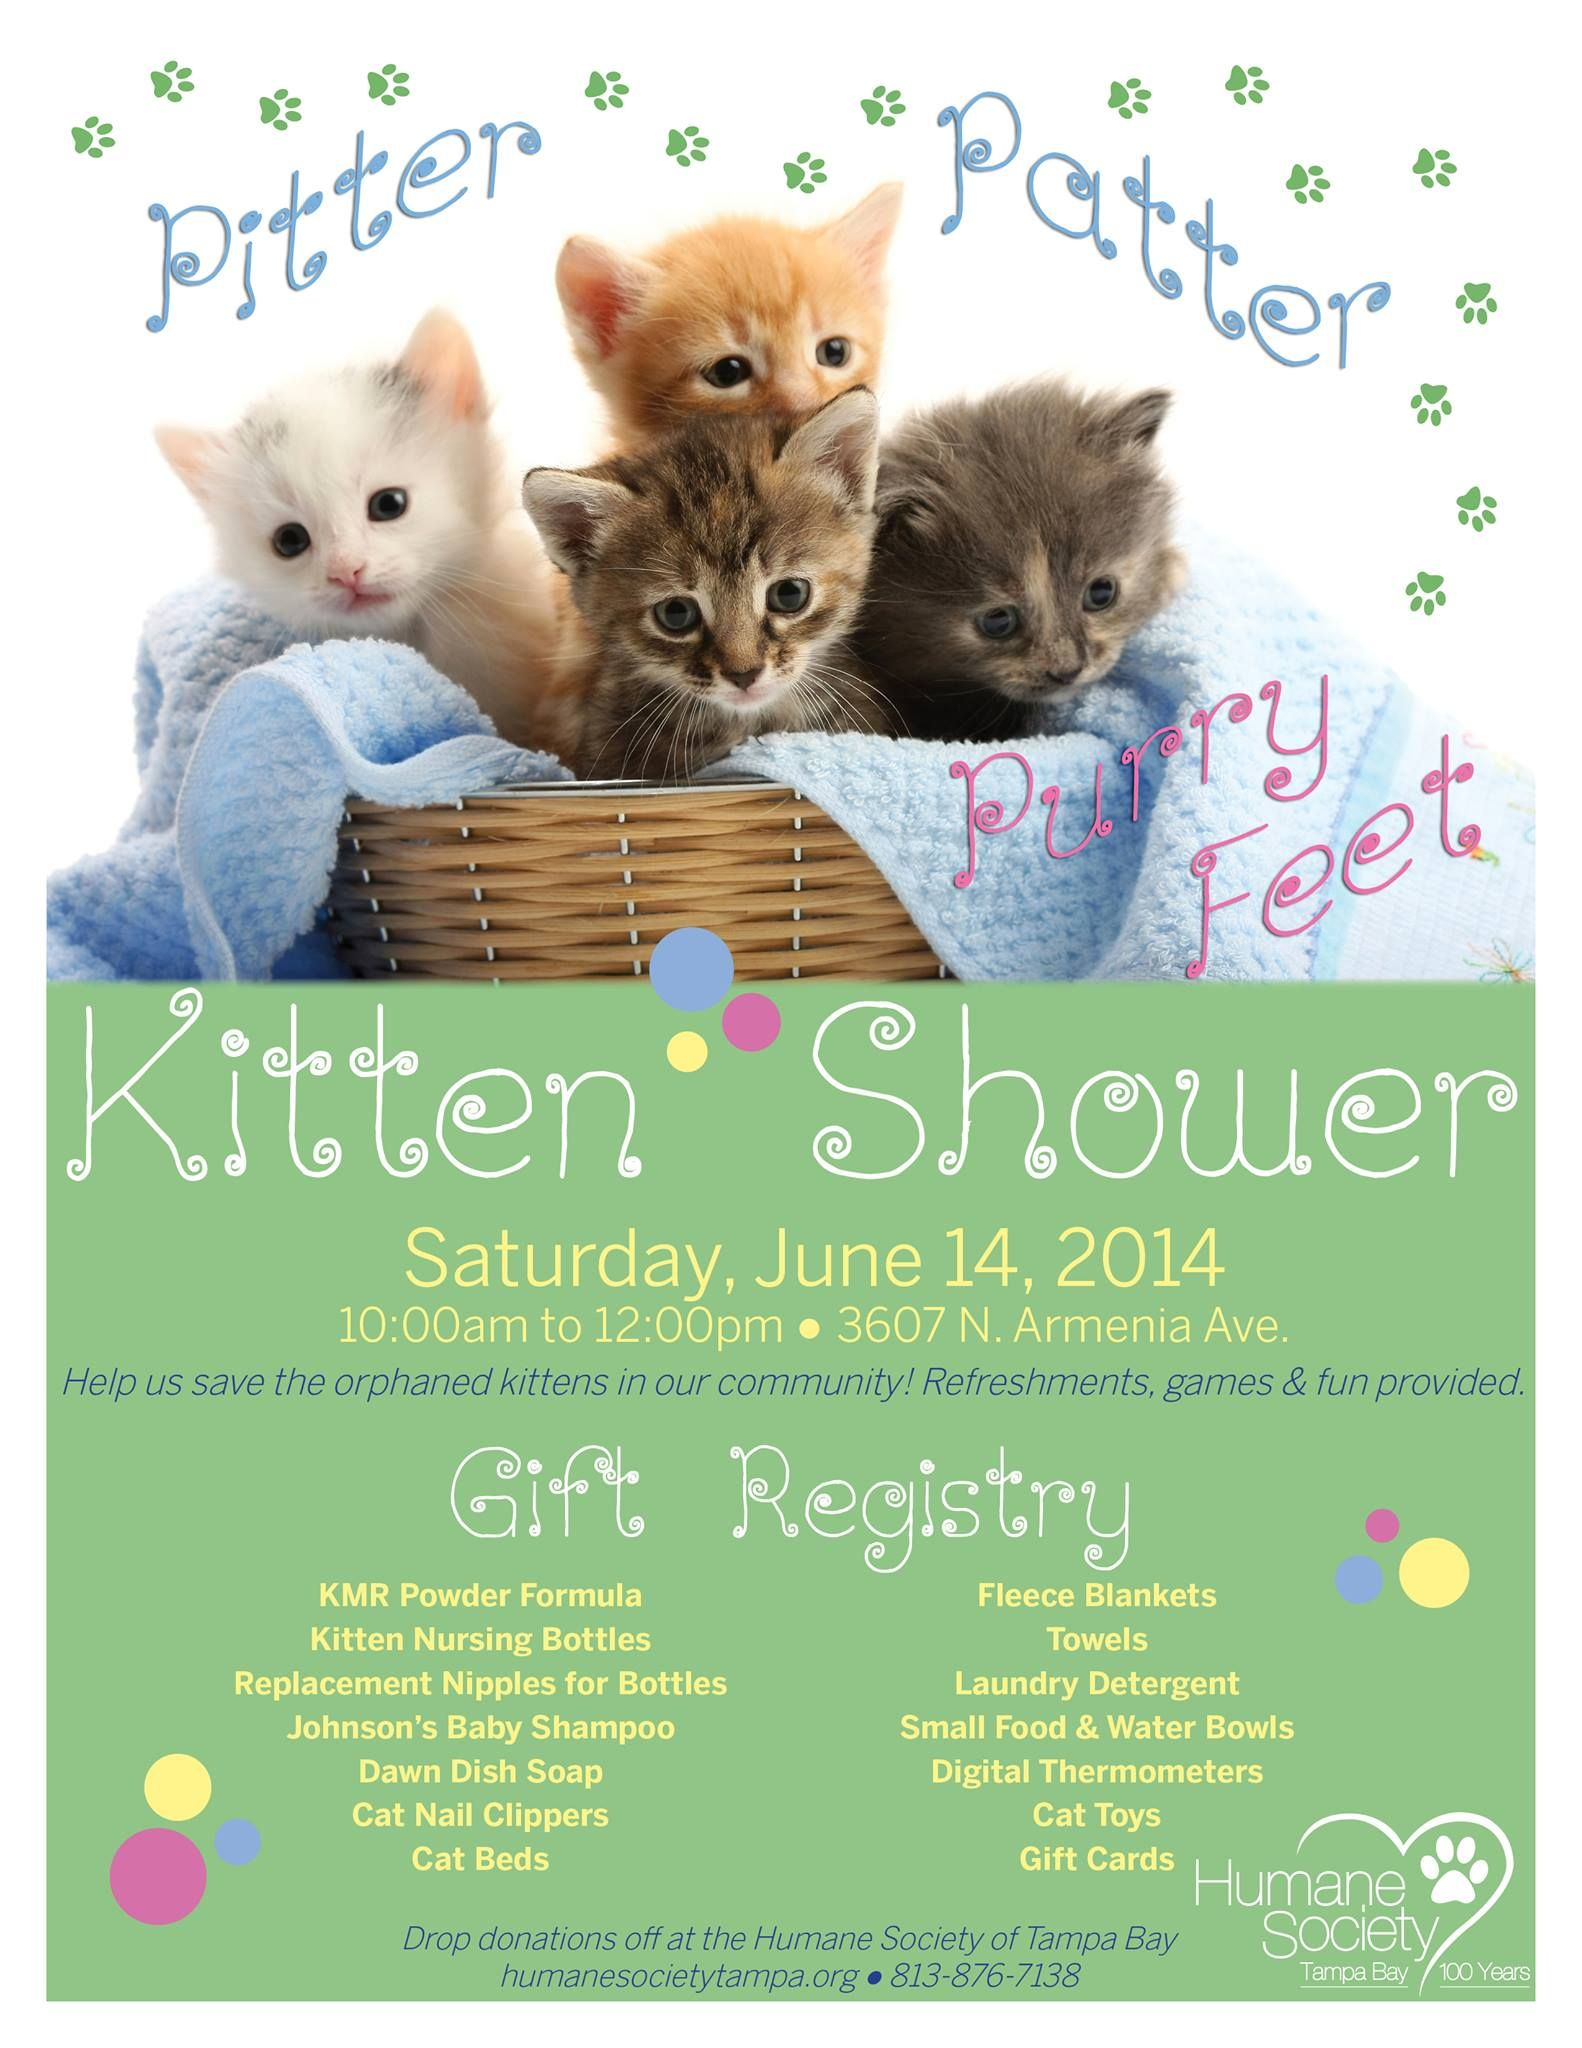 Upcoming Events Kitten Showerupcoming Events The Humane Society Of Tampa Bay Kitten Shelter Kittens Animal Rescue Ideas